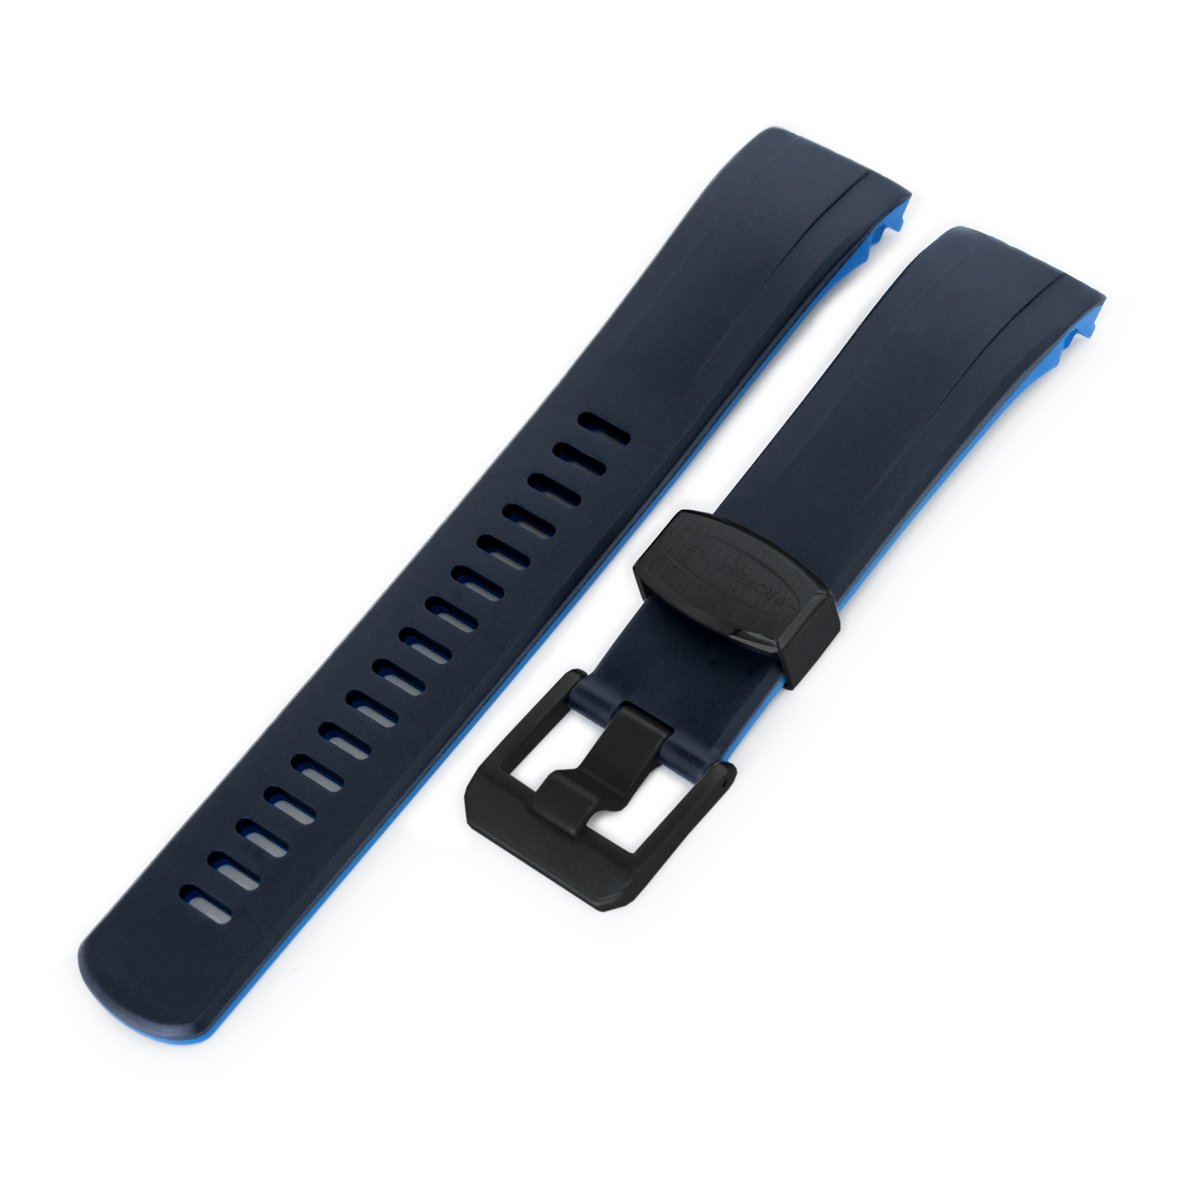 22mm Crafter Blue Dual Color Black & Blue Rubber Curved Lug Watch Strap for Seiko Samurai SRPB51 PVD Black Buckle Strapcode Watch Bands